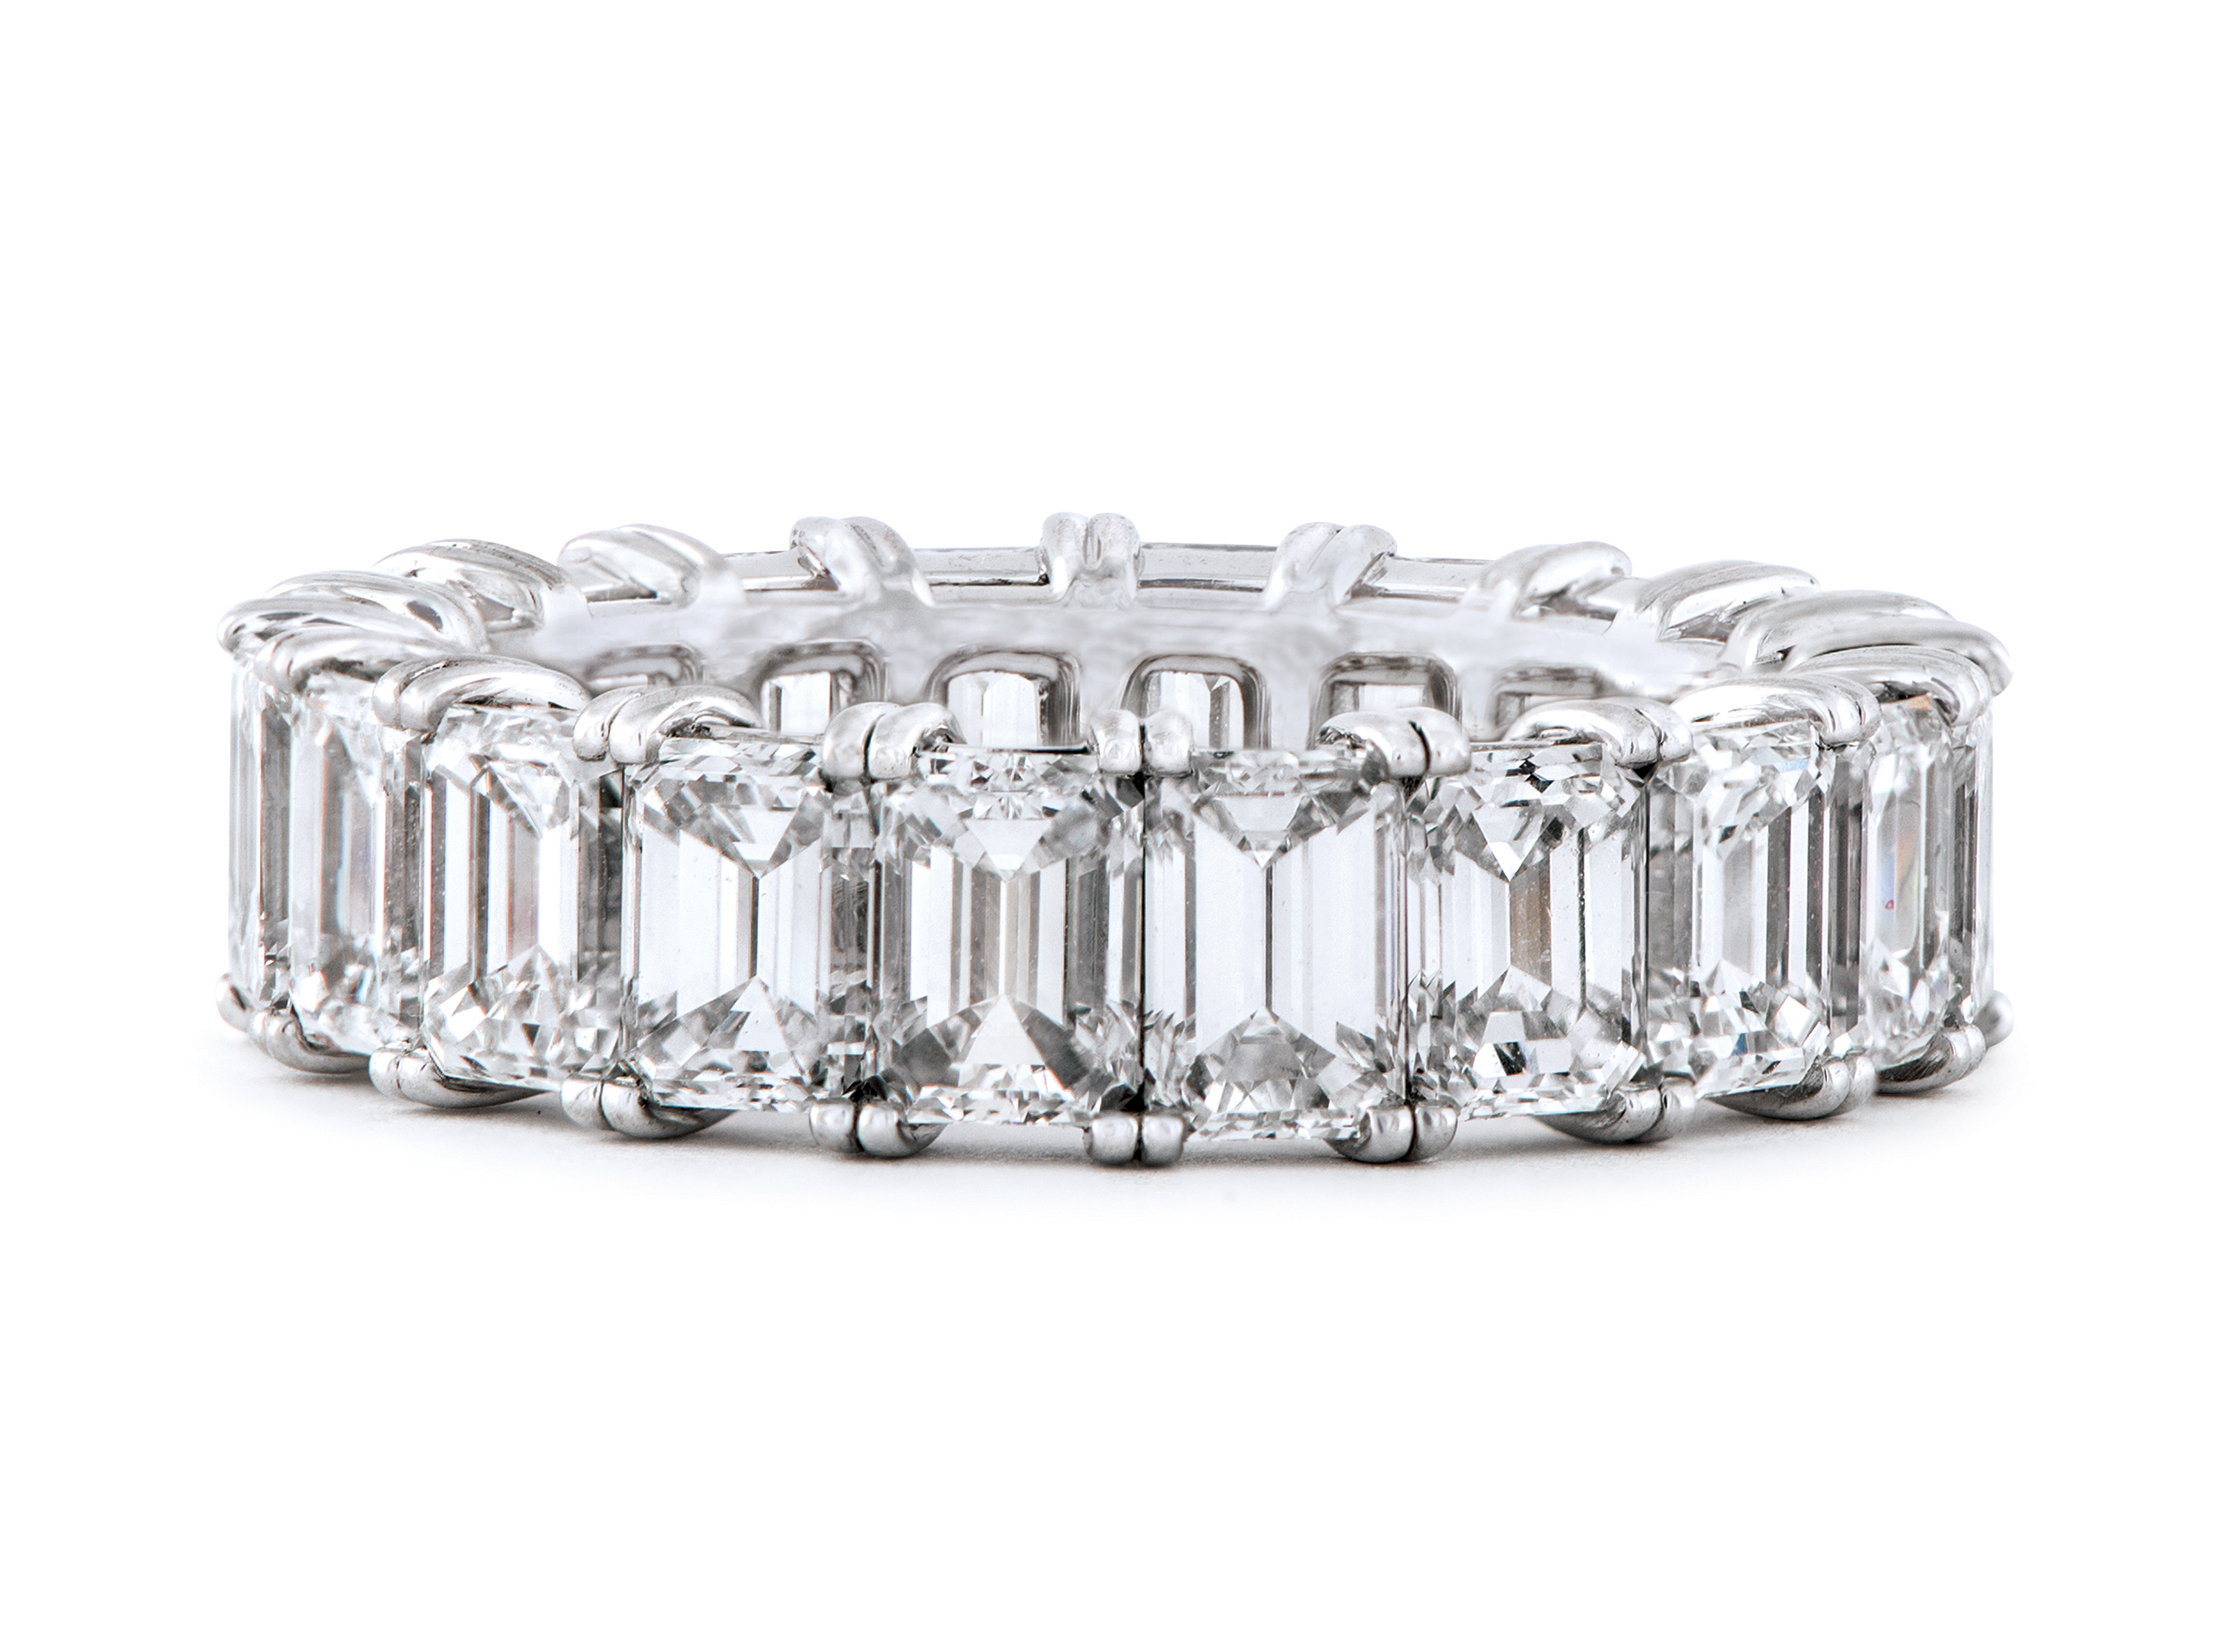 solitaire topic the blingy one h me with a tiffany edge moissanite only band i setting img style moment show knife rings shared have at engagement bands carat and my width your is in